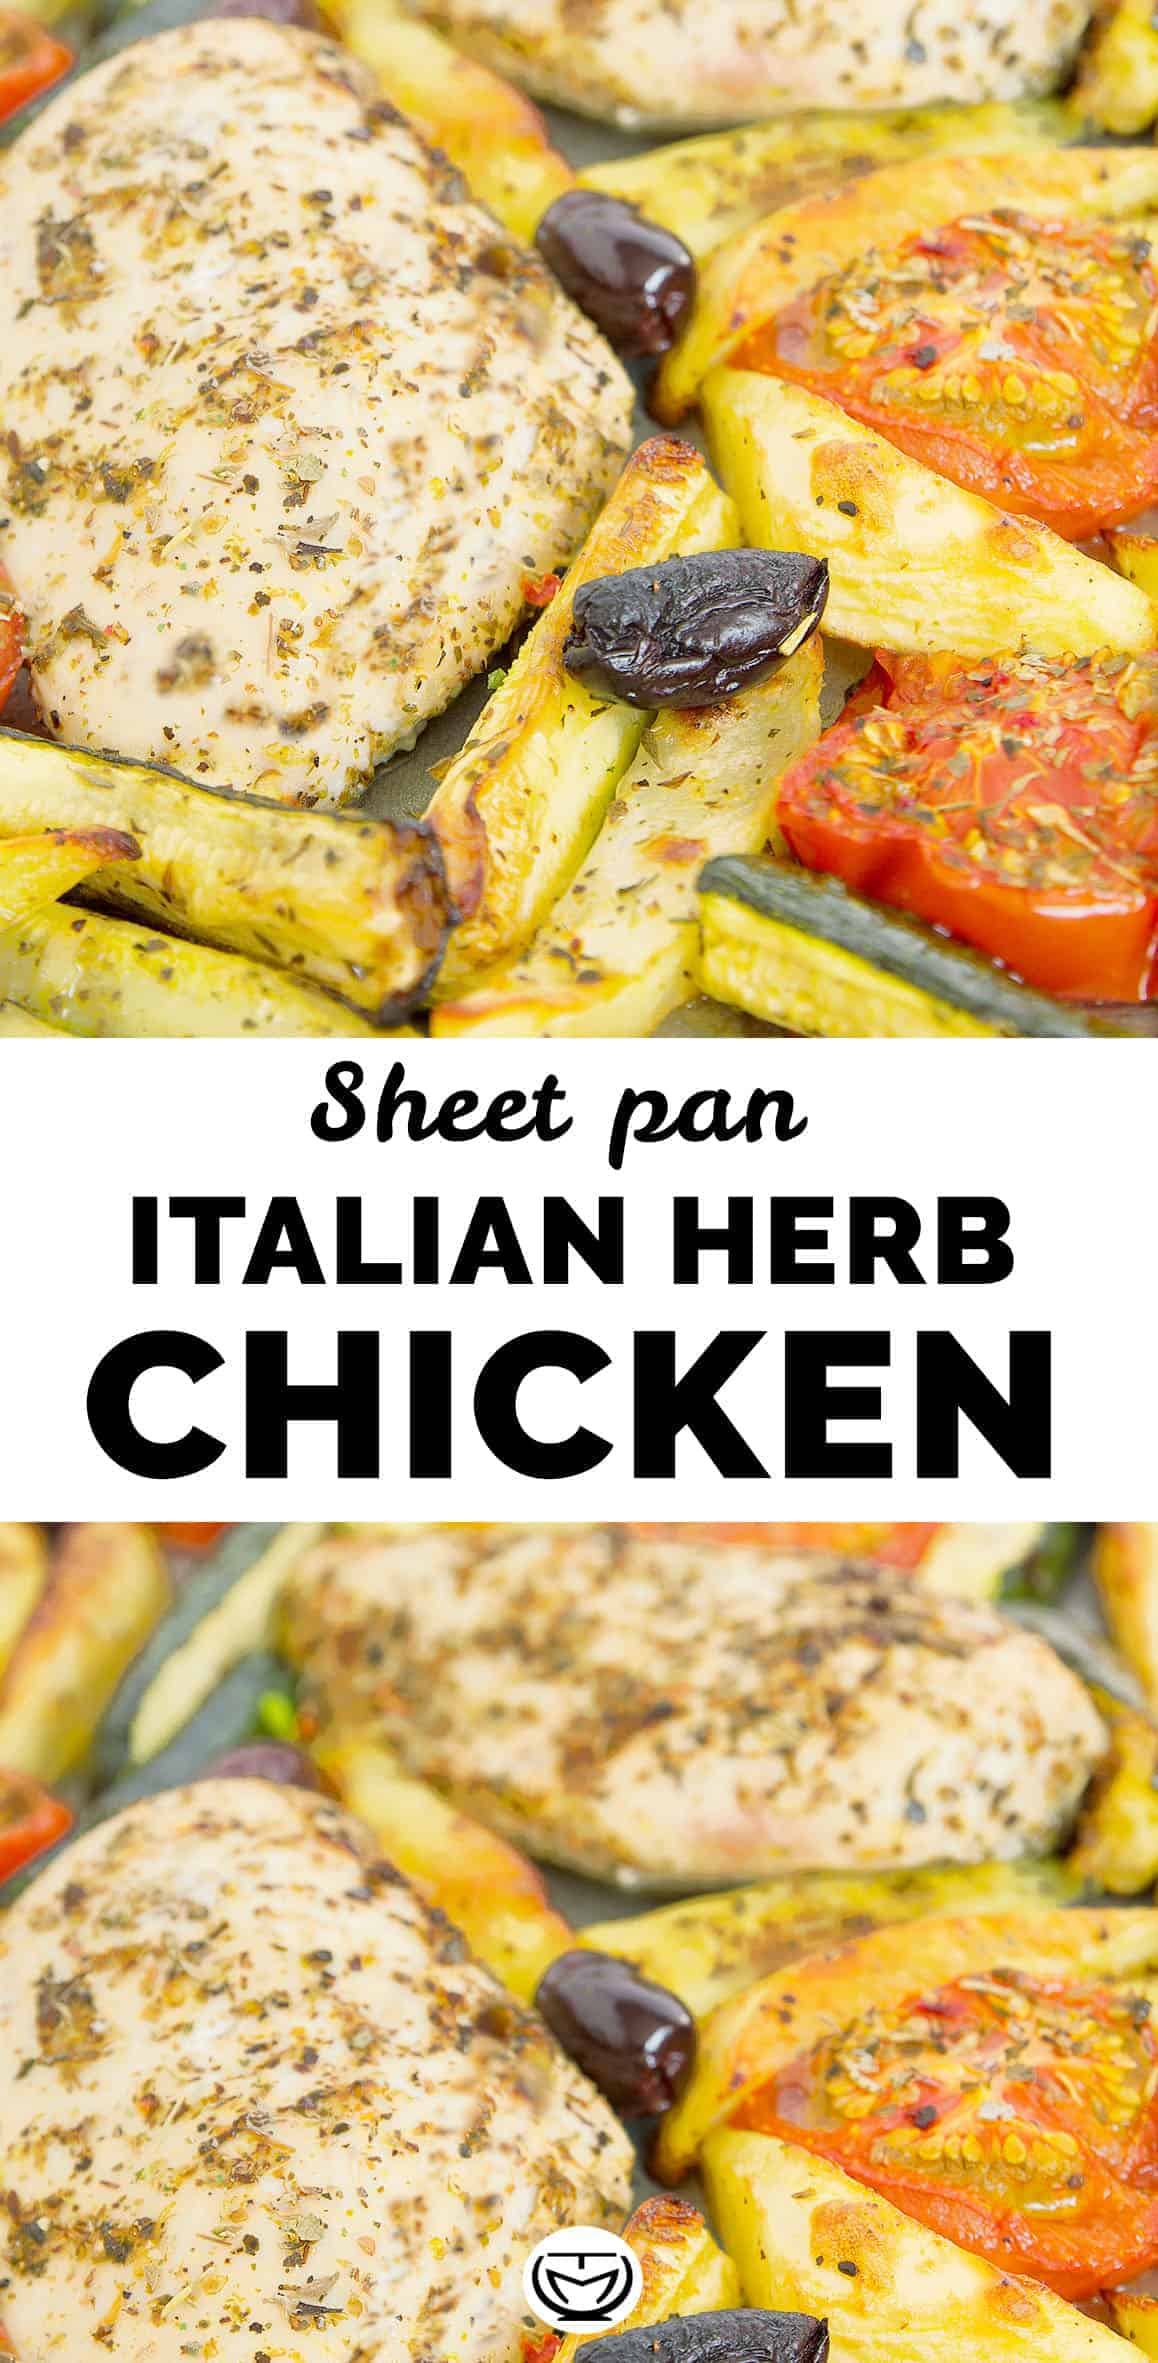 The juicy chicken breasts are marinated in a Mediterranean marinade with olive oil, garlic and plenty of aromatic herbs then roasted to perfection for about 15 minutes. This sheet pan Italian herb chicken is simply delicious, juicy and fork-tender. It keeps very well in the fridge and makes a perfect meal prep even if you can't reheat it. #sheetpandinners #mealprep #Italianrecipes #light